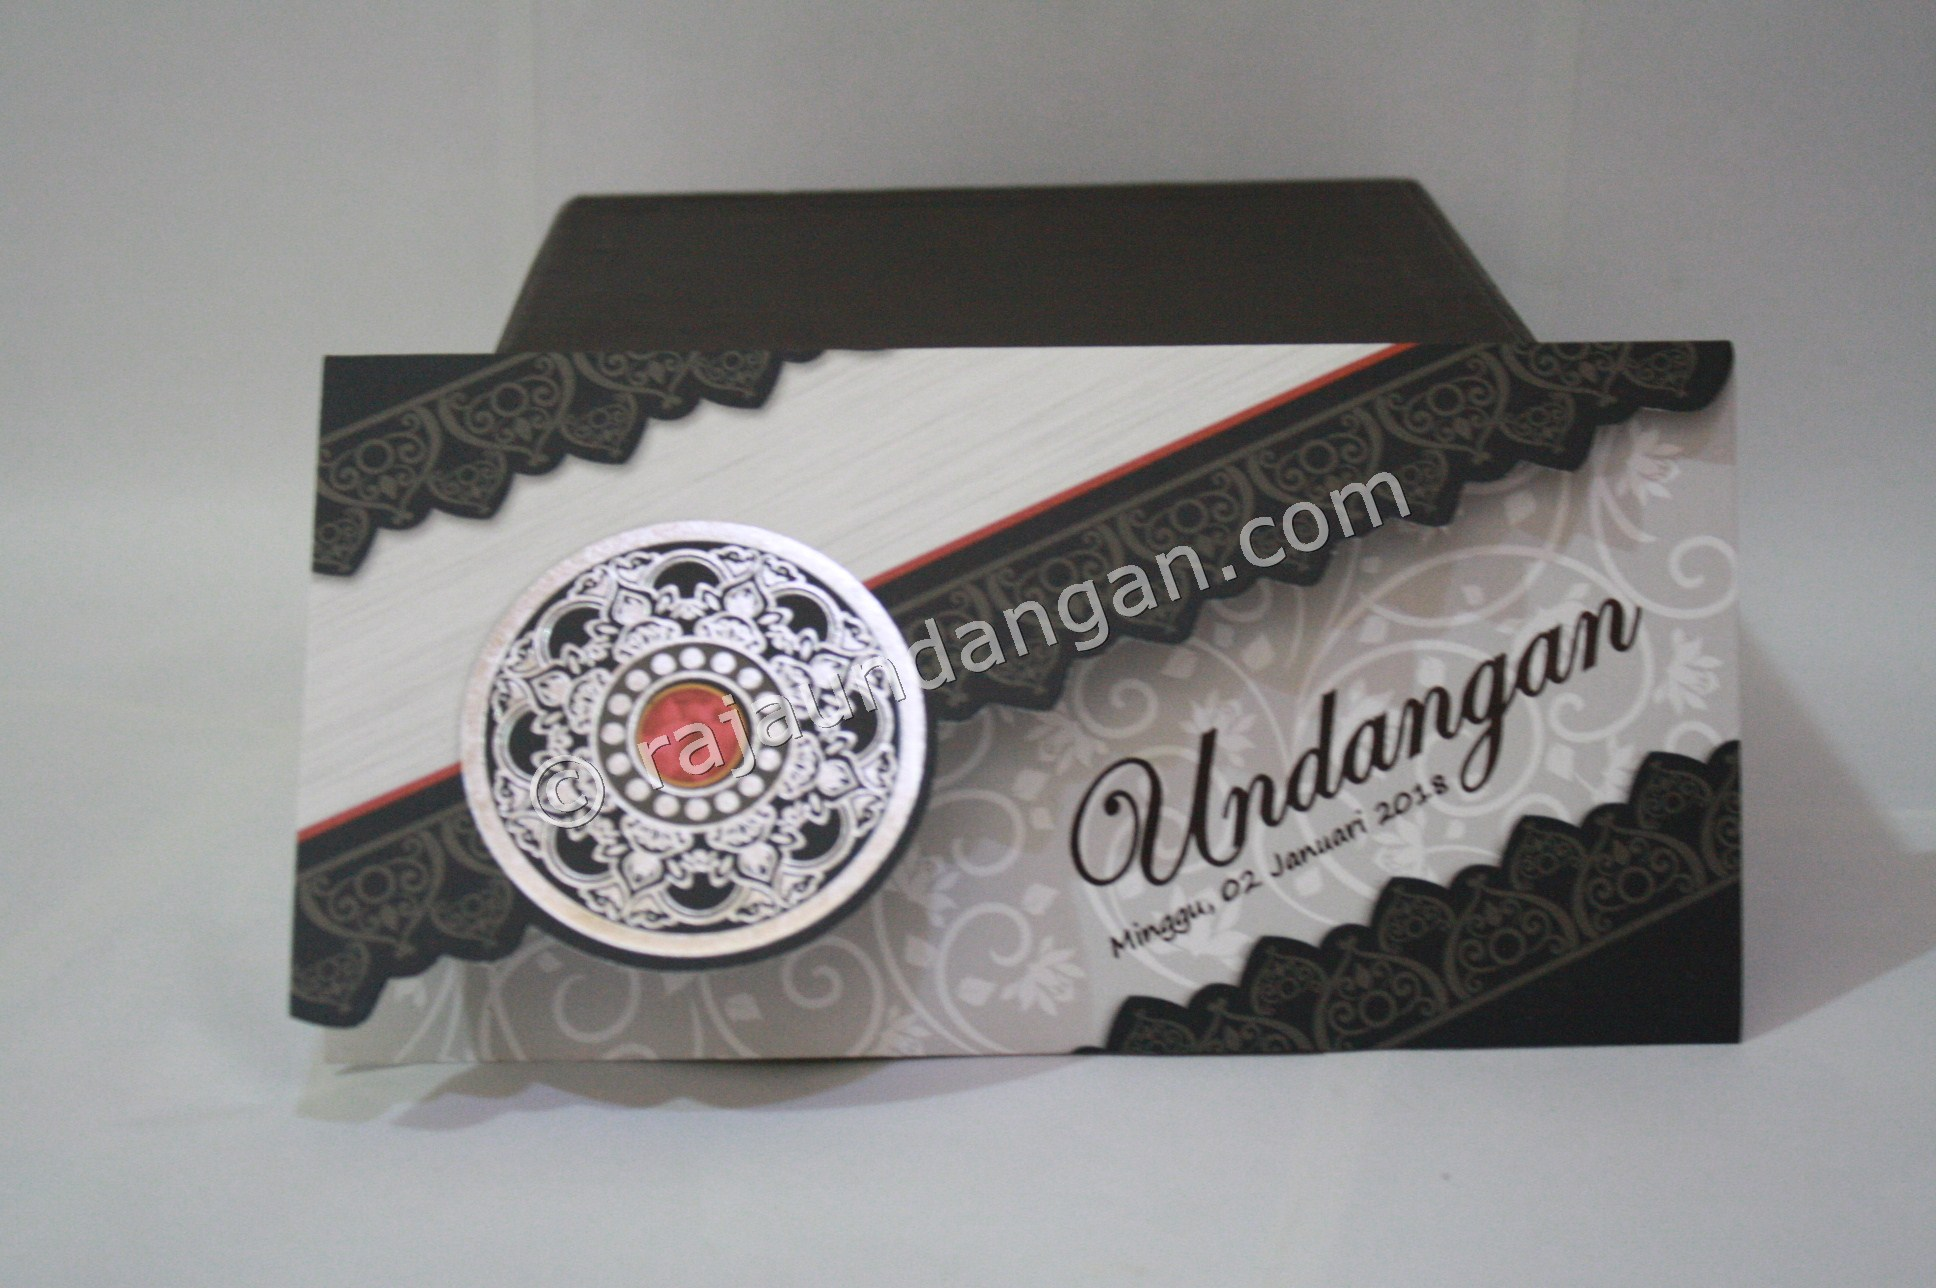 Undangan Pernikahan Softcover Gina dan Rio - Membuat Wedding Invitations Unik dan Simple di Sawahan